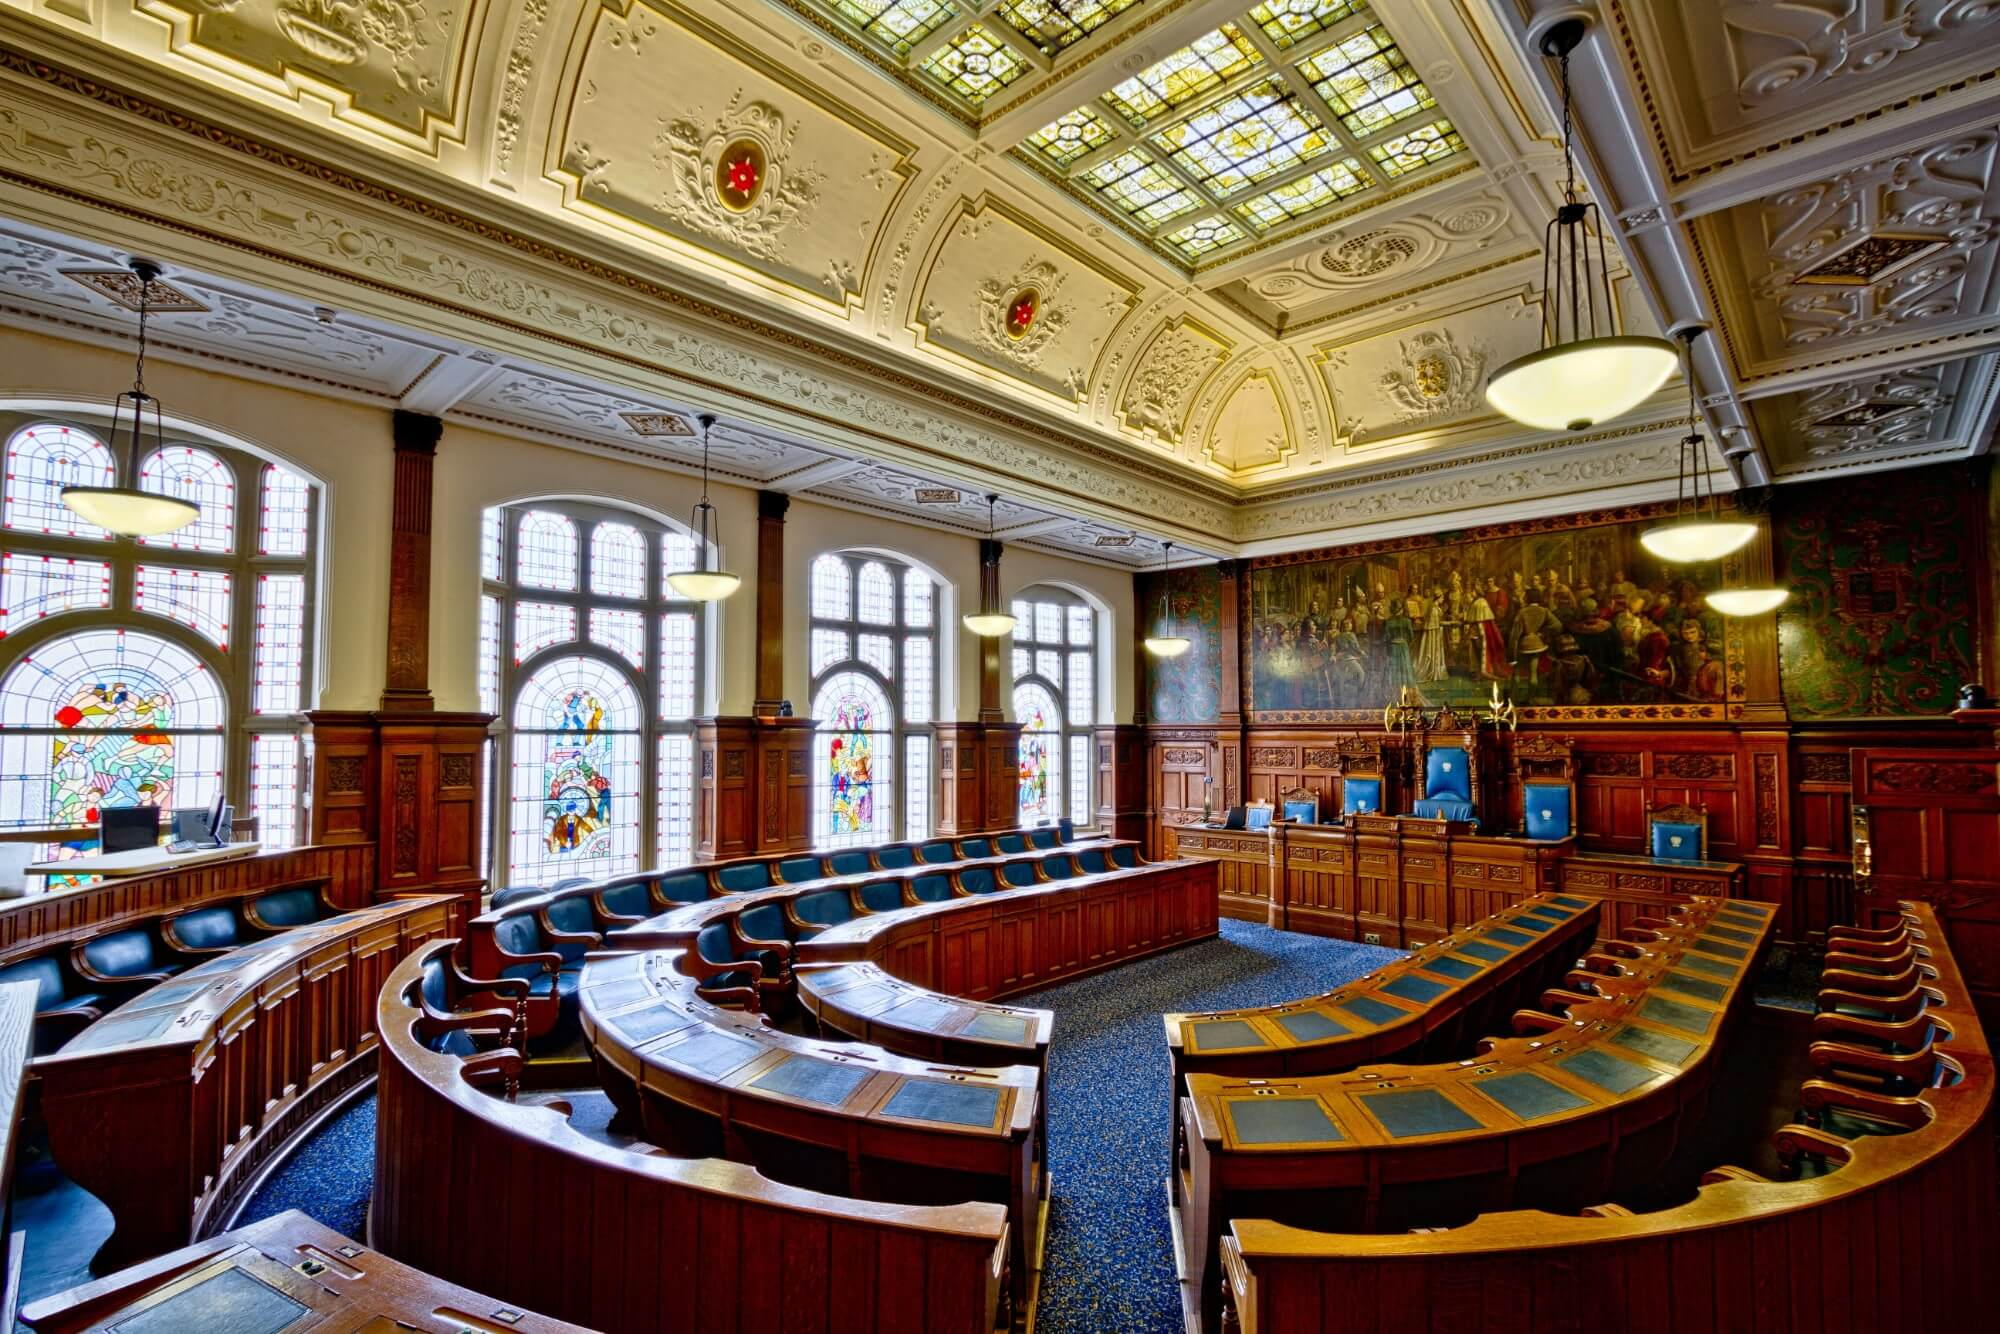 British courtroom with curved seats